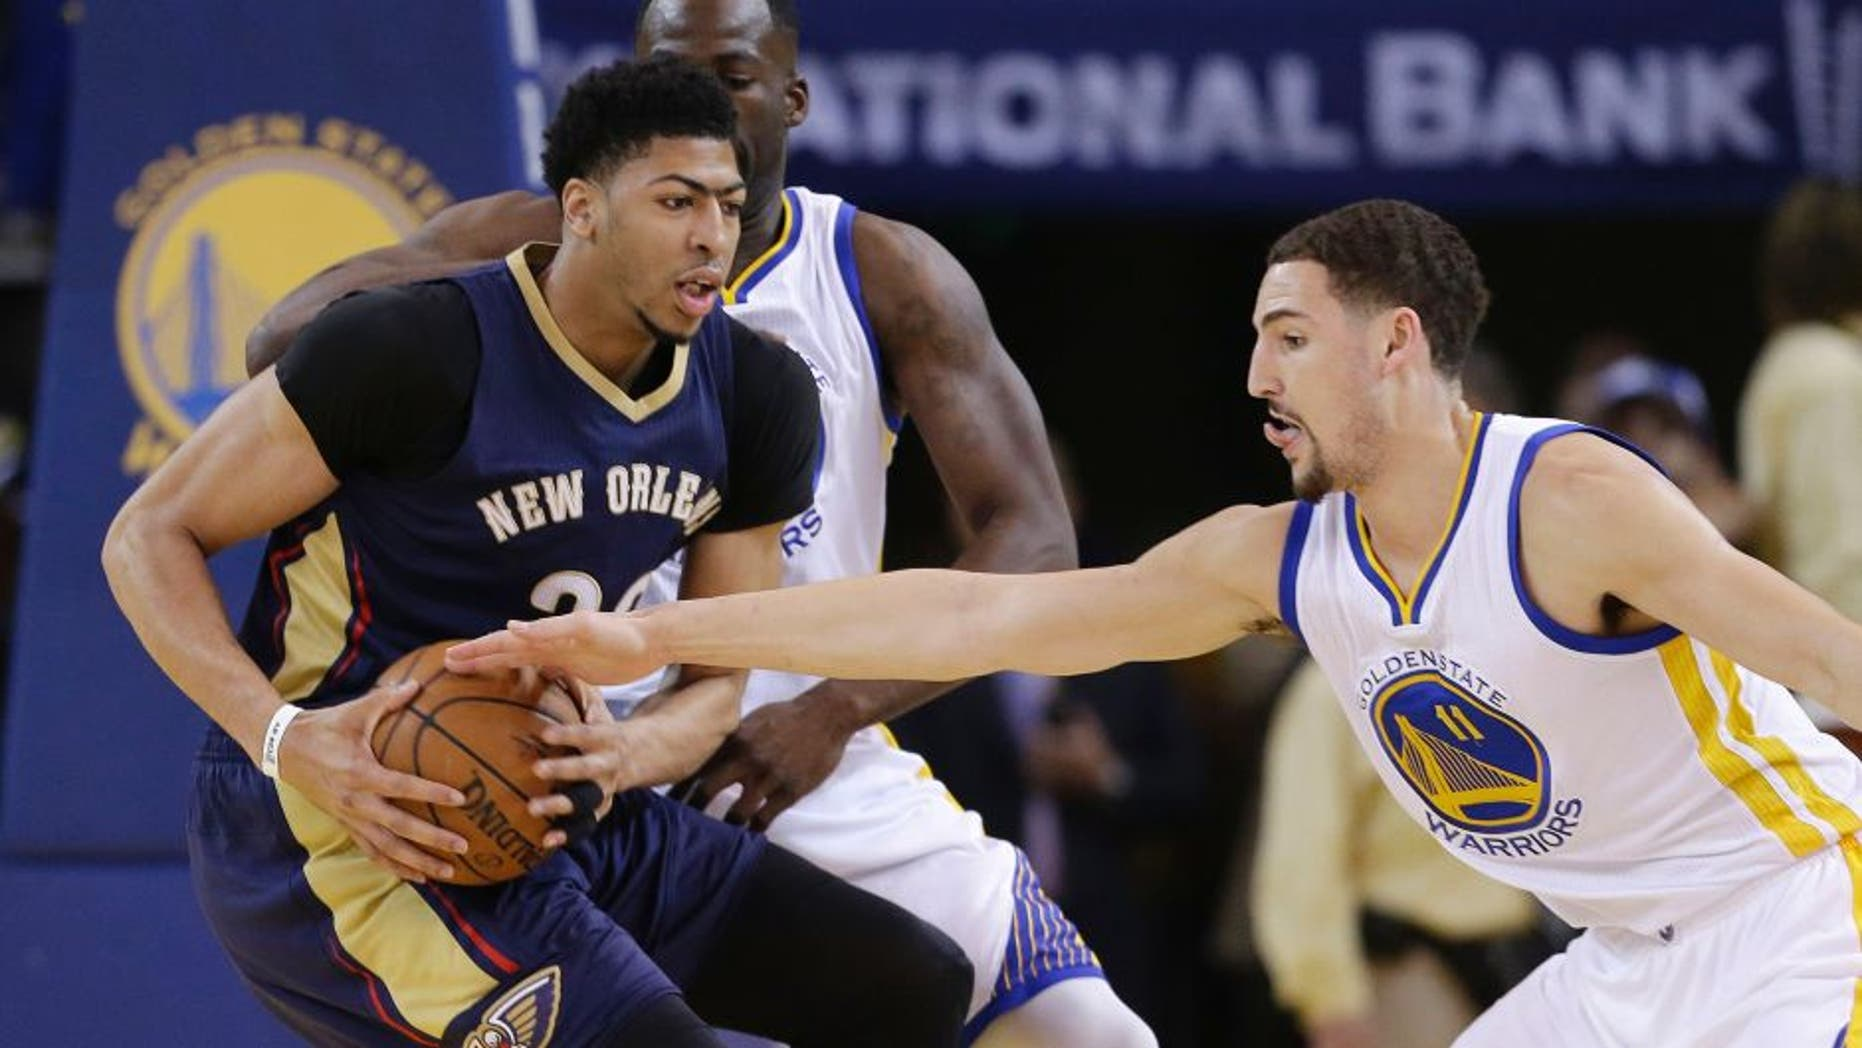 Golden State Warriors' Klay Thompson (11) defends on New Orleans Pelicans' Anthony Davis during the first half in Game 2 of a first-round NBA basketball playoff series Monday, April 20, 2015, in Oakland, Calif. (AP Photo/Marcio Jose Sanchez)